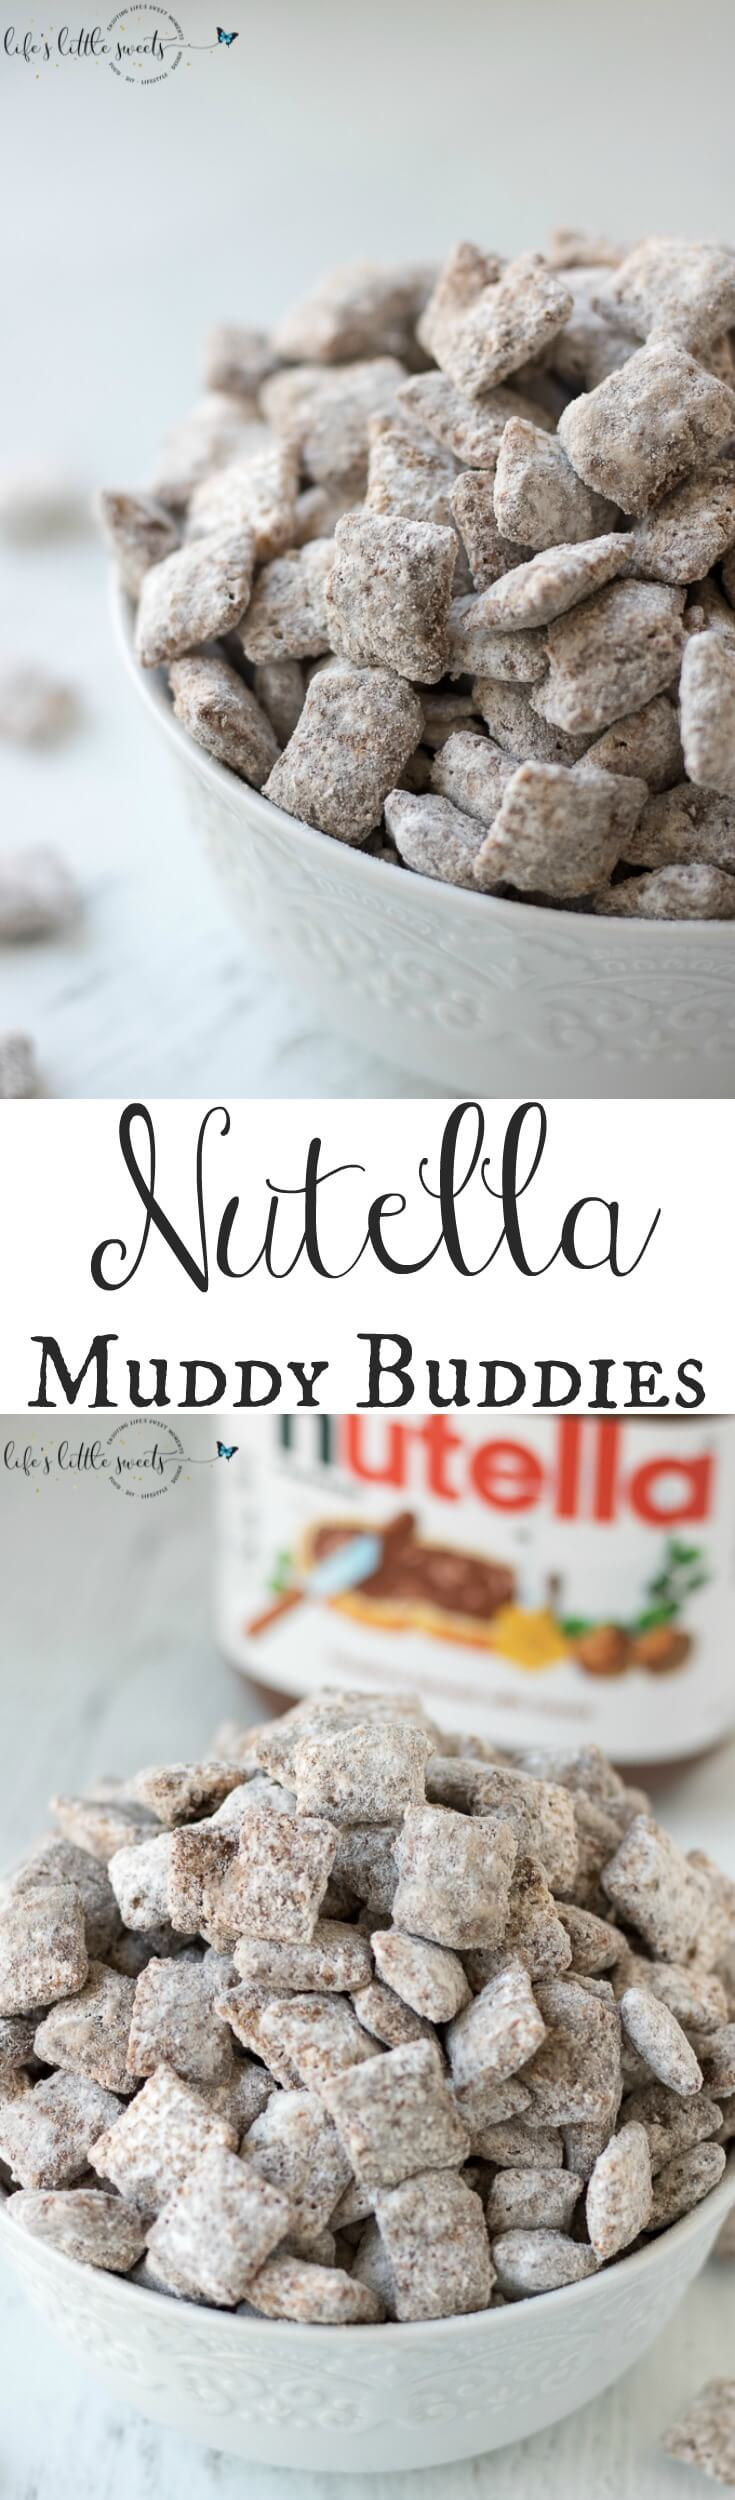 Nutella Muddy Buddies are quick to prepare, addicting to eat and feeds a crowd.  Make this delicious twist on a classic party food for your next gathering or yourself! #nutella #sweet #chocolate #snack #dessert #ricecereal #recipe